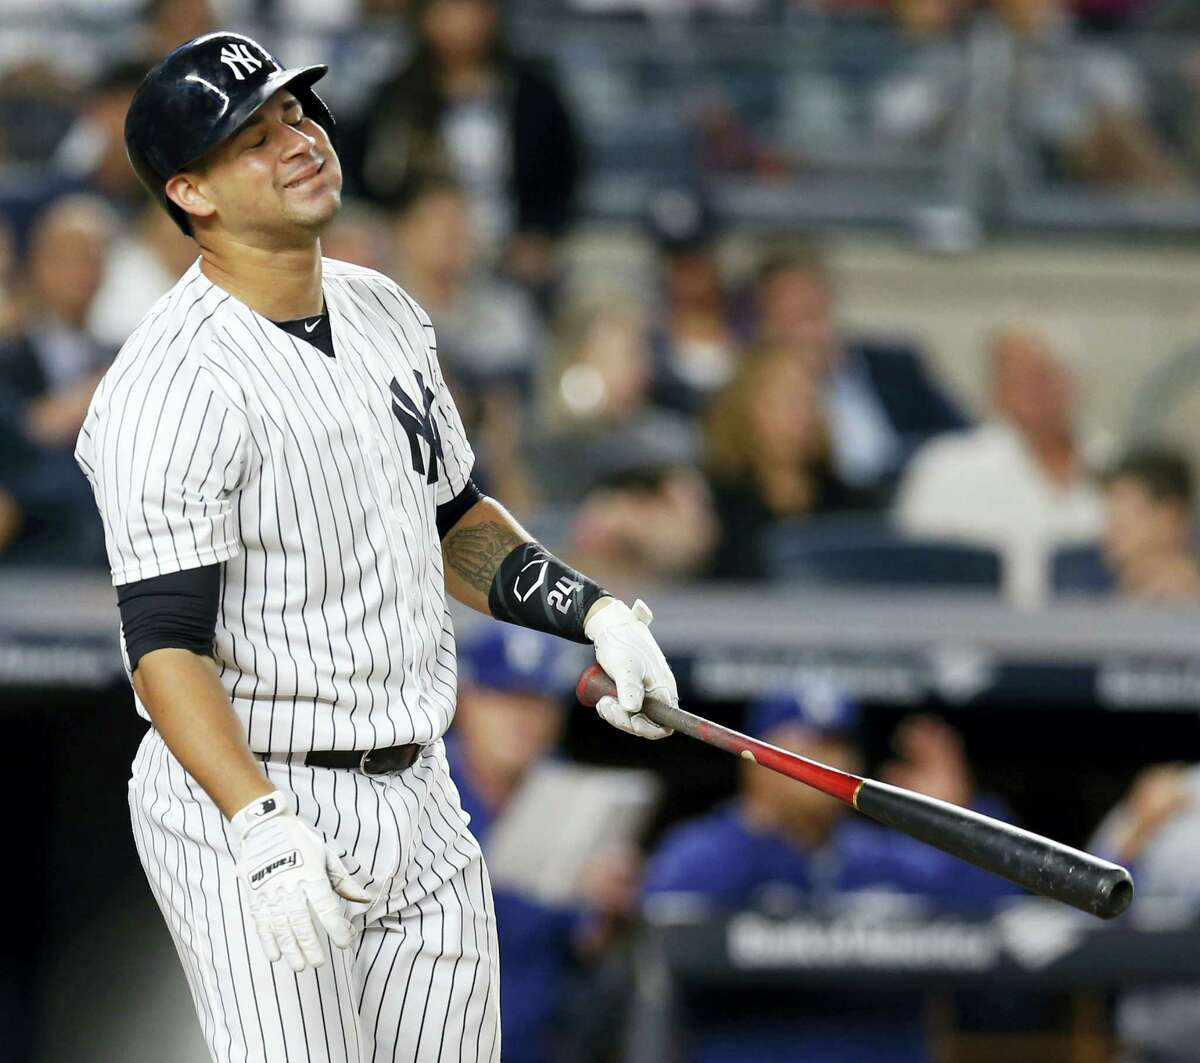 Gary Sanchez reacts after striking out during the fifth inning on Monday.